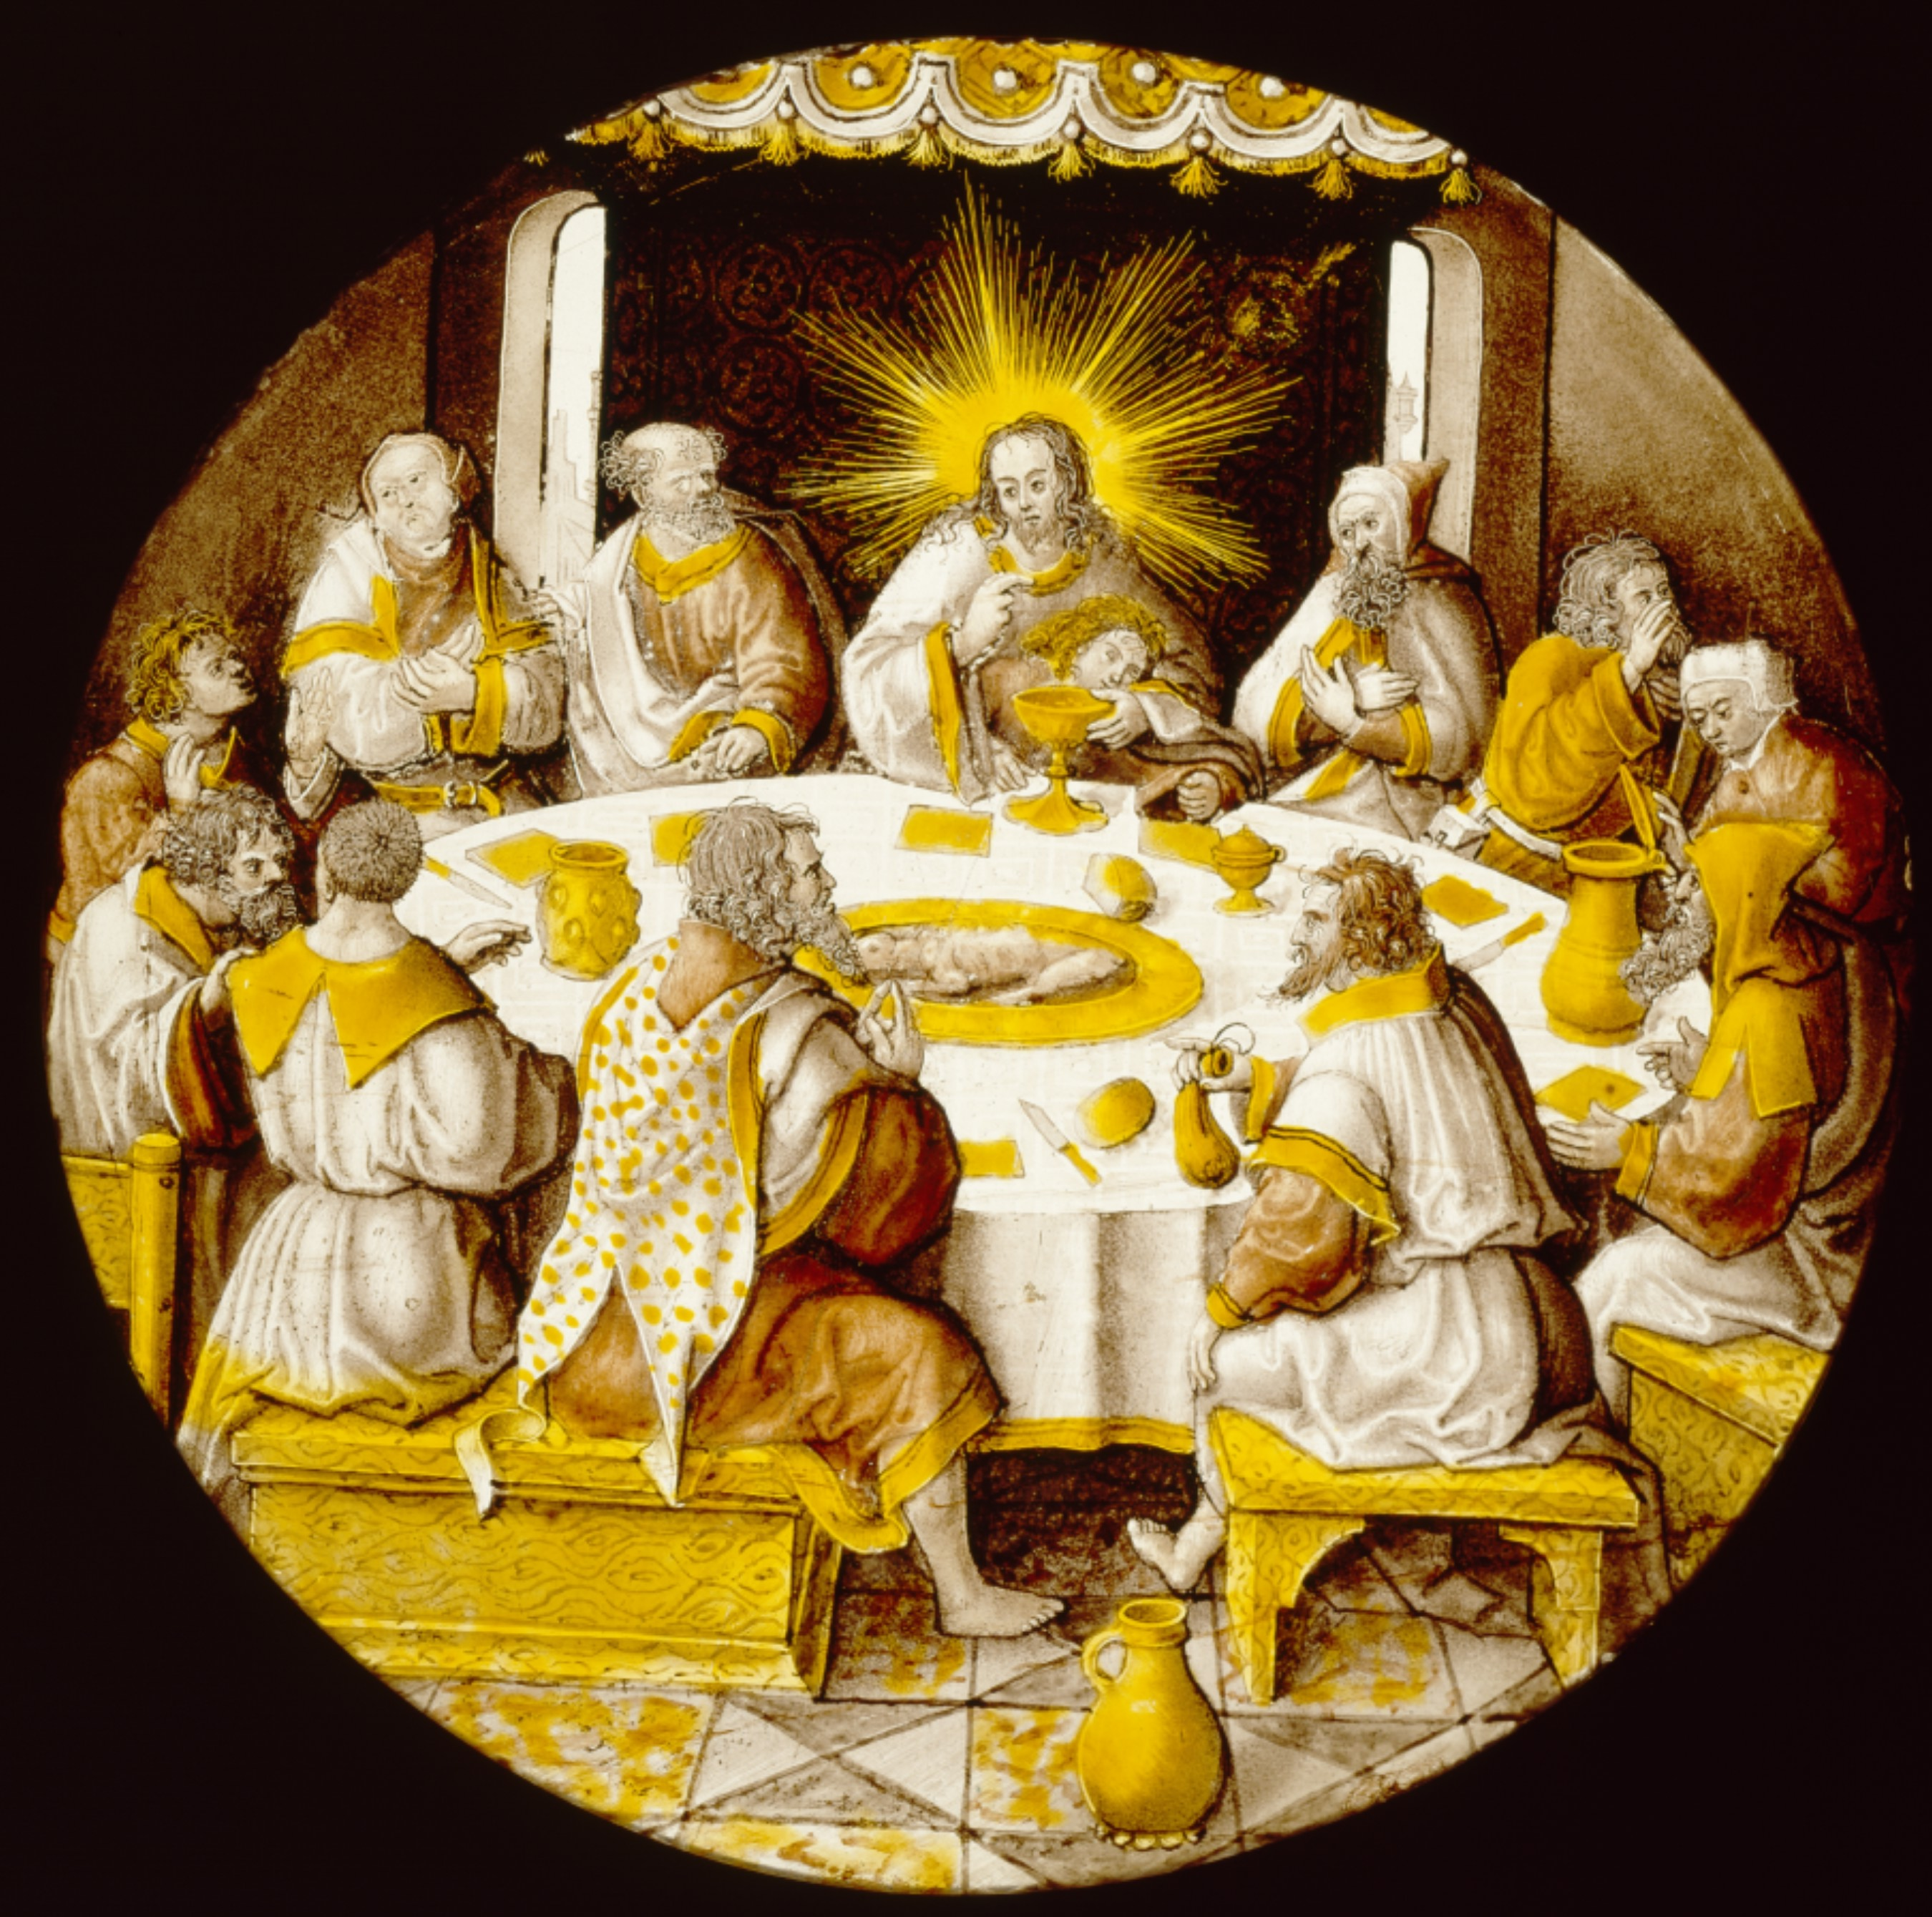 After Jacob Cornelisz van Oostsanen, Last Supper, 1514-25, colorless glass, vitreous paint and silver stain, 1.3 x 23.8 cm Detroit Institute of Arts